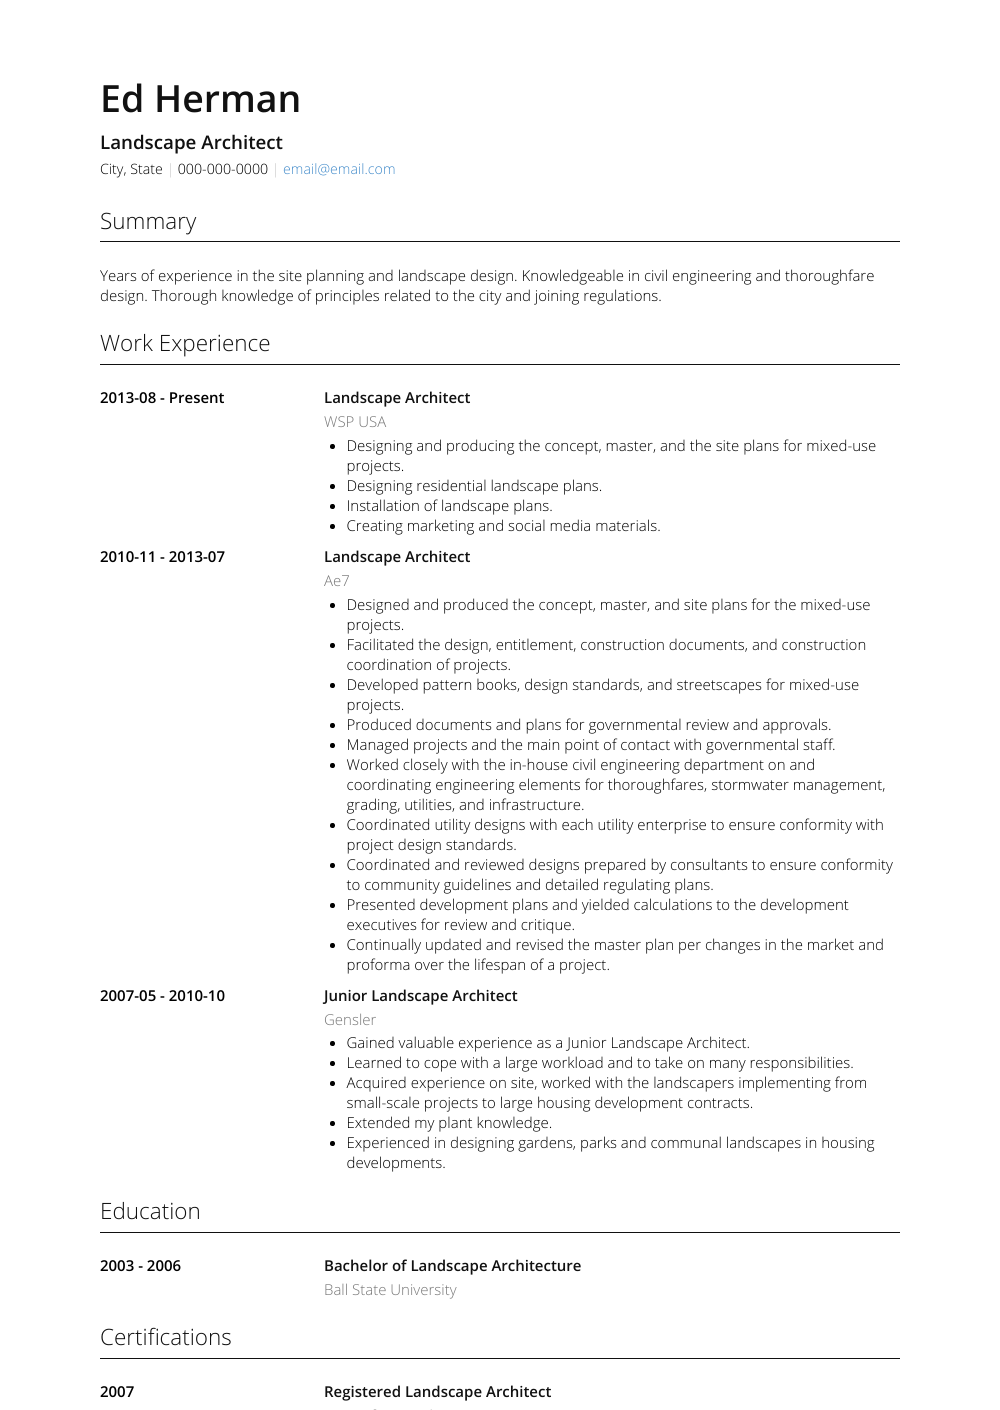 Landscape Architect Resume Sample and Template